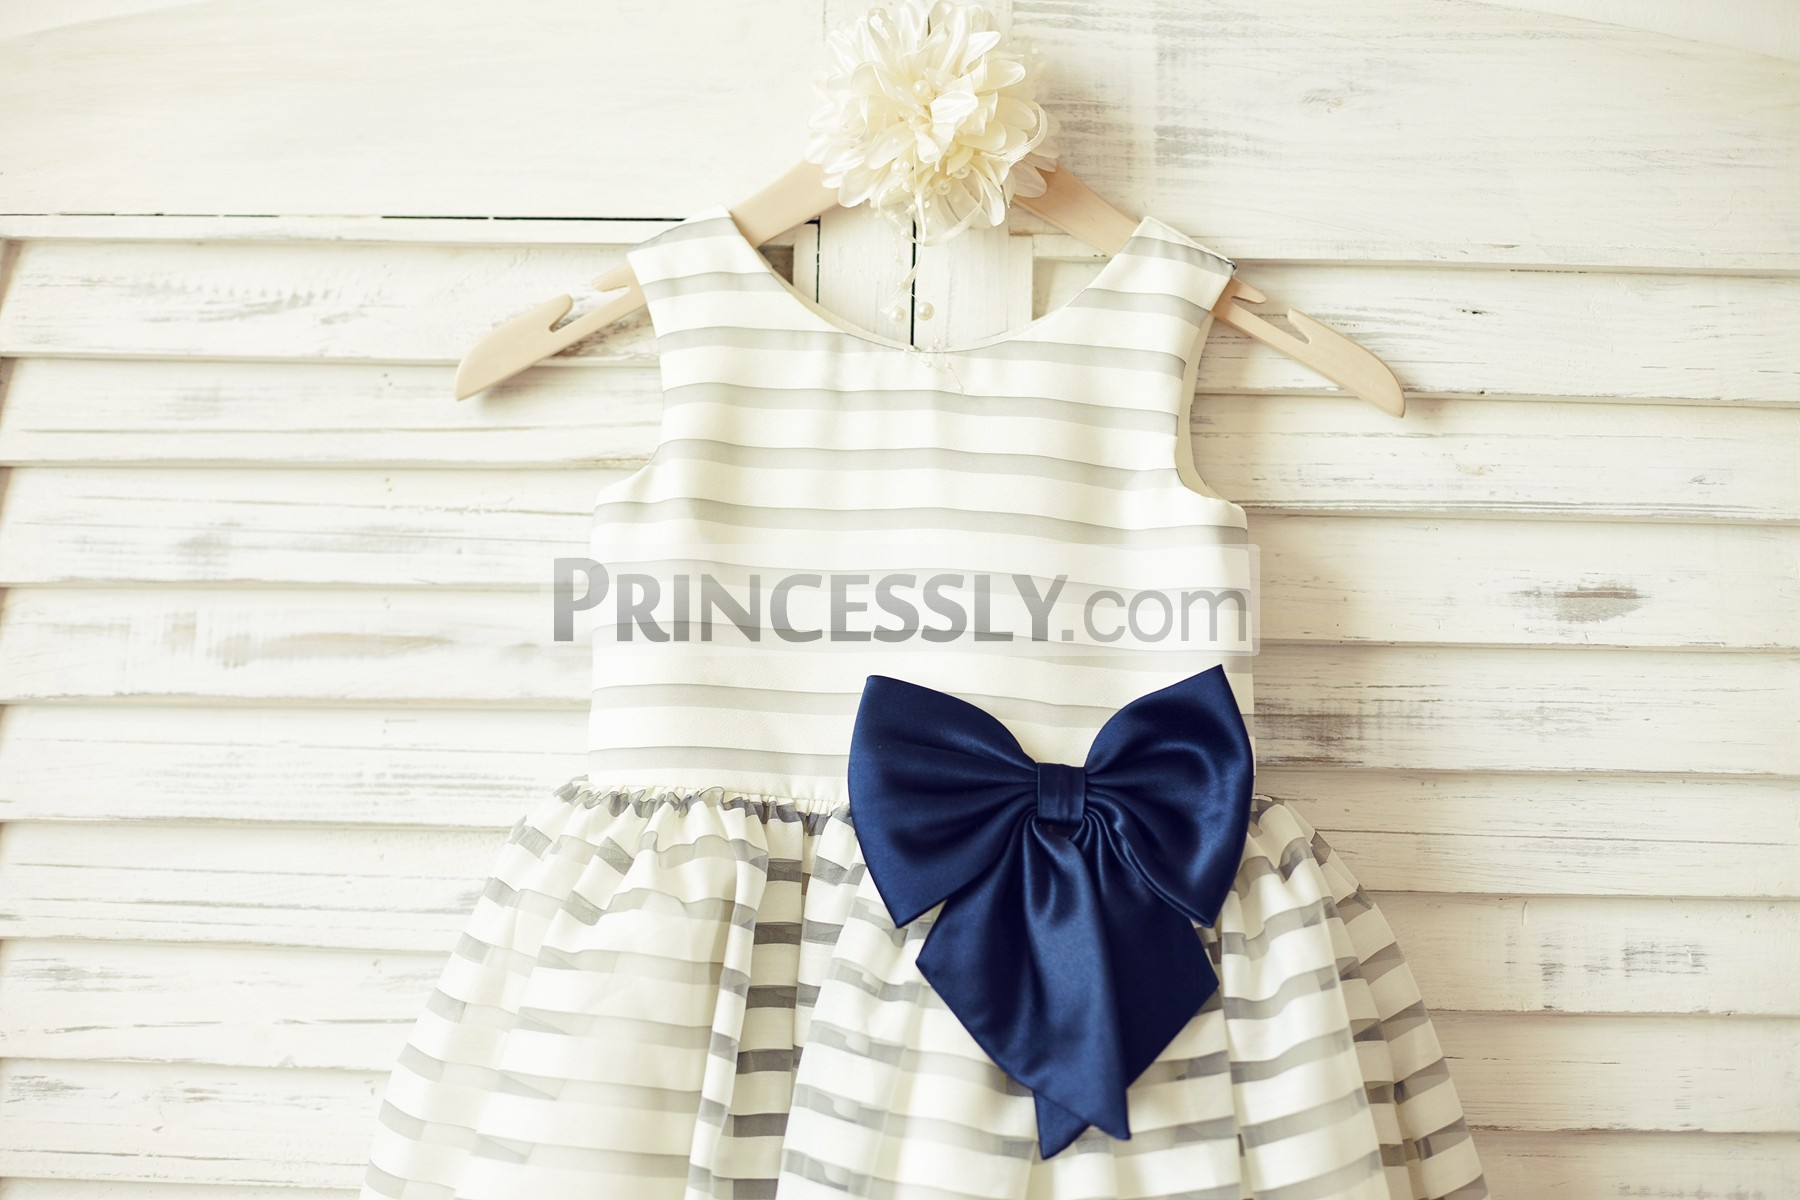 Scoop neckline sleeveless bodice wit a navy blue bow